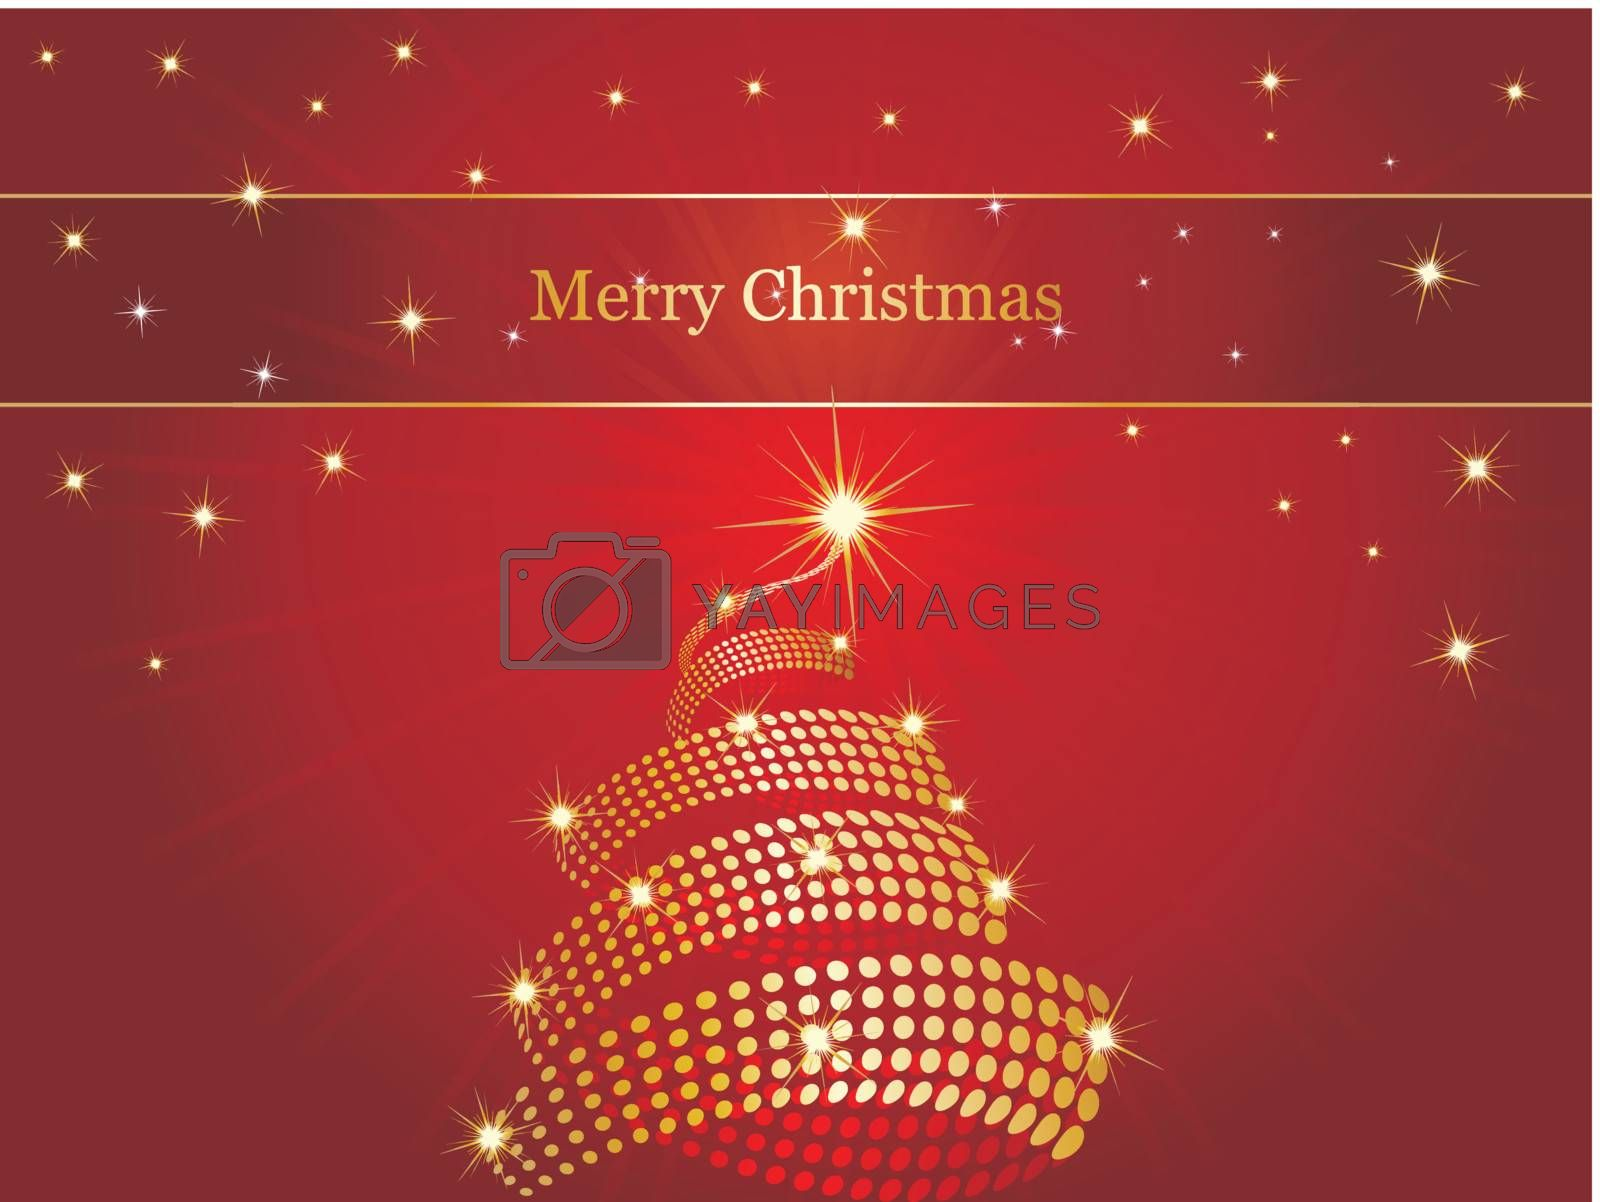 christmas background with tree and stars, wallpaper